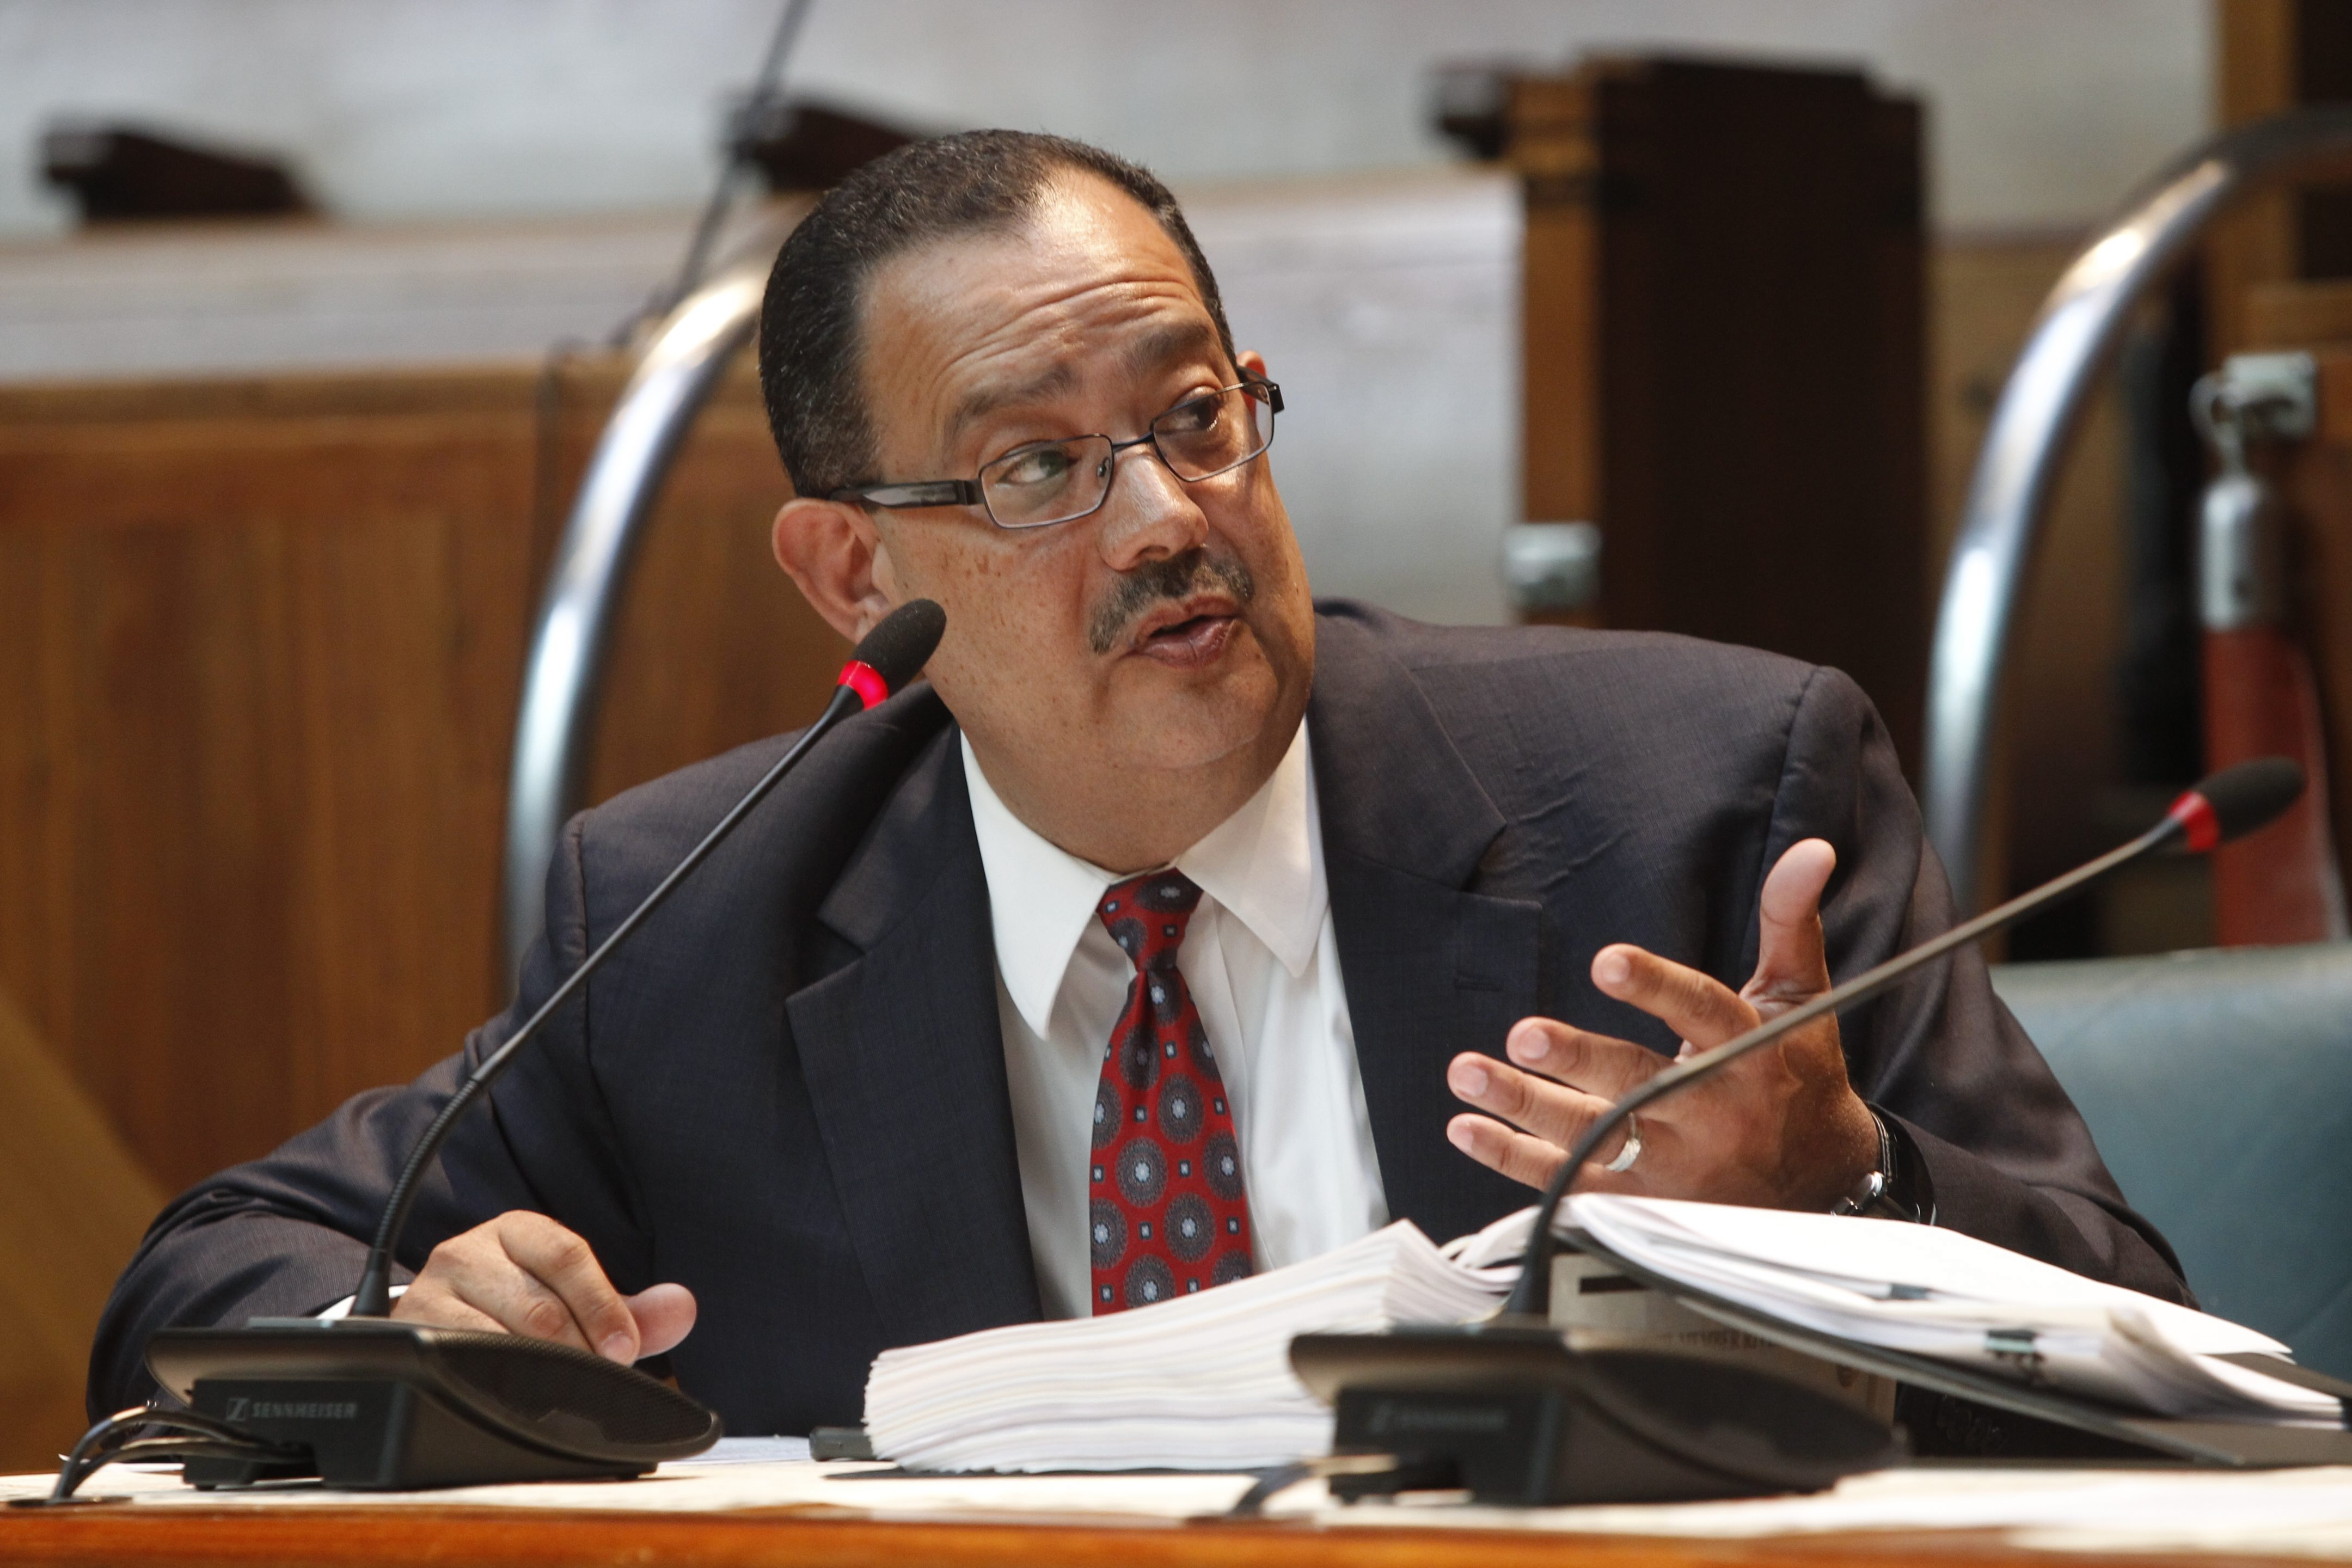 Common Council member David Rivera introduced a resolution to reinstate a car allowance for Council members, which was discontinued in the late 1990s. (News file photo)